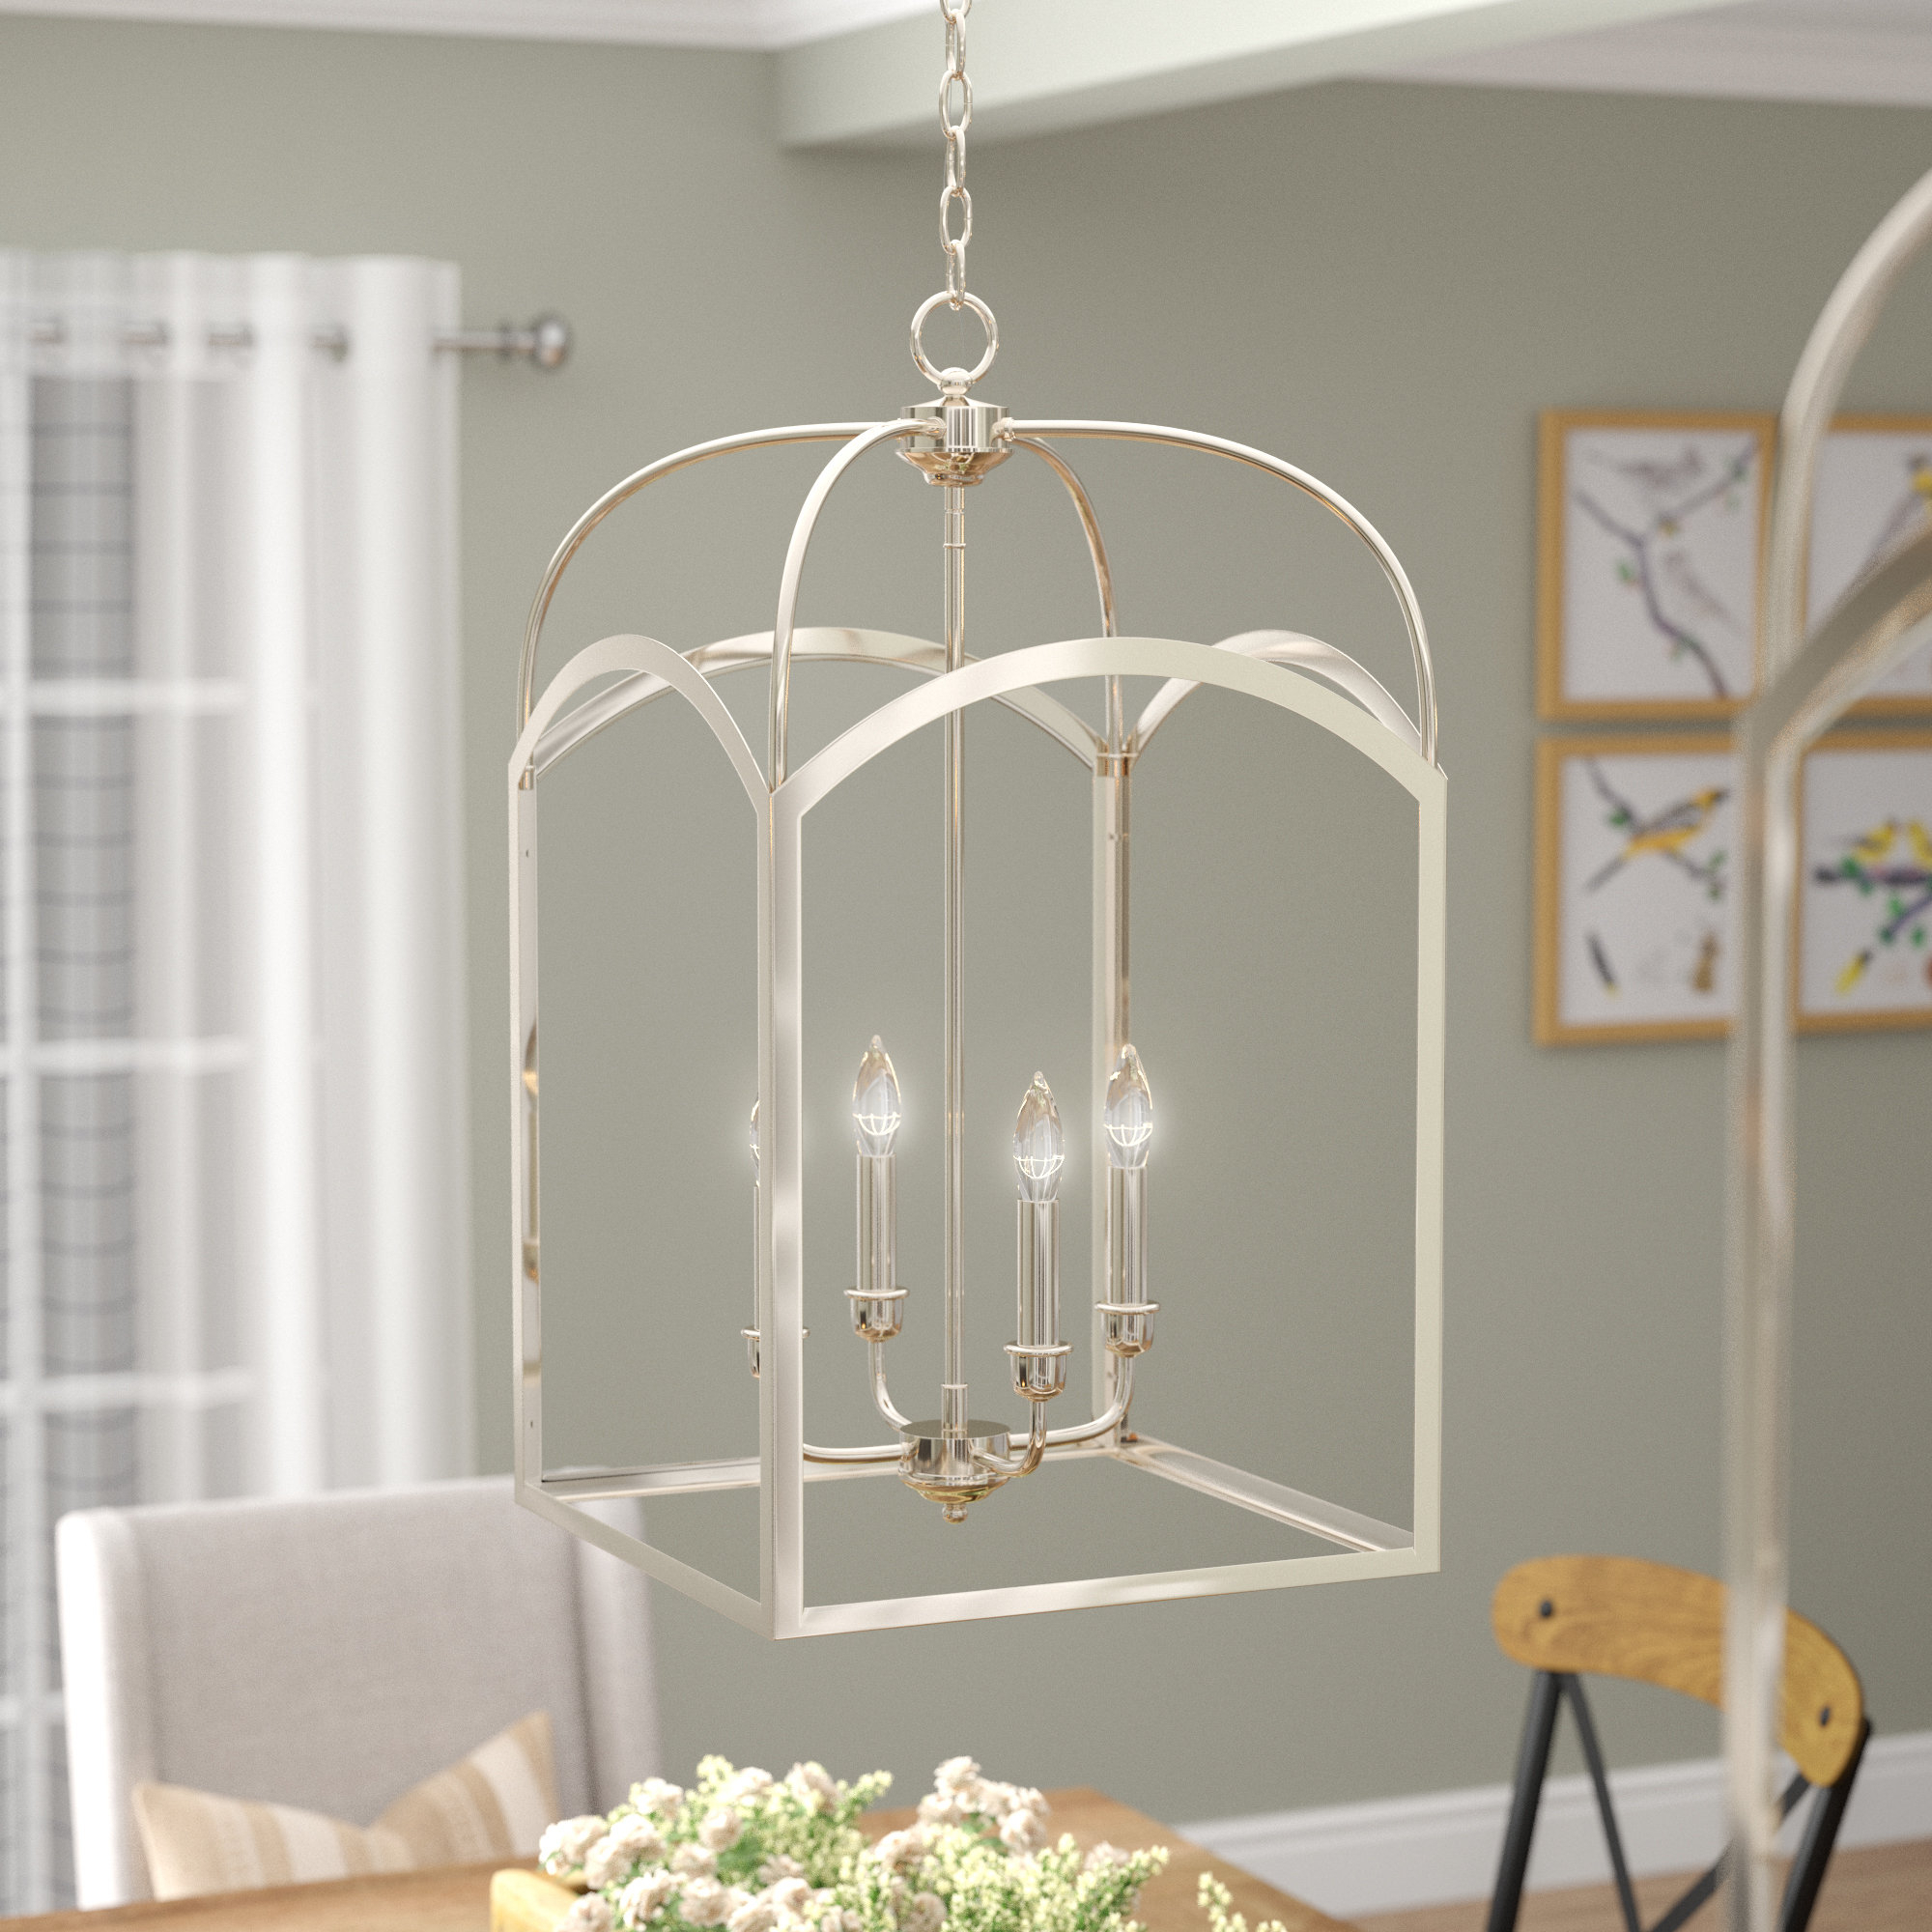 Laurel Foundry Modern Farmhouse Mount Airy 4 Light Lantern Pertaining To Trendy Taya 4 Light Lantern Square Pendants (View 14 of 20)